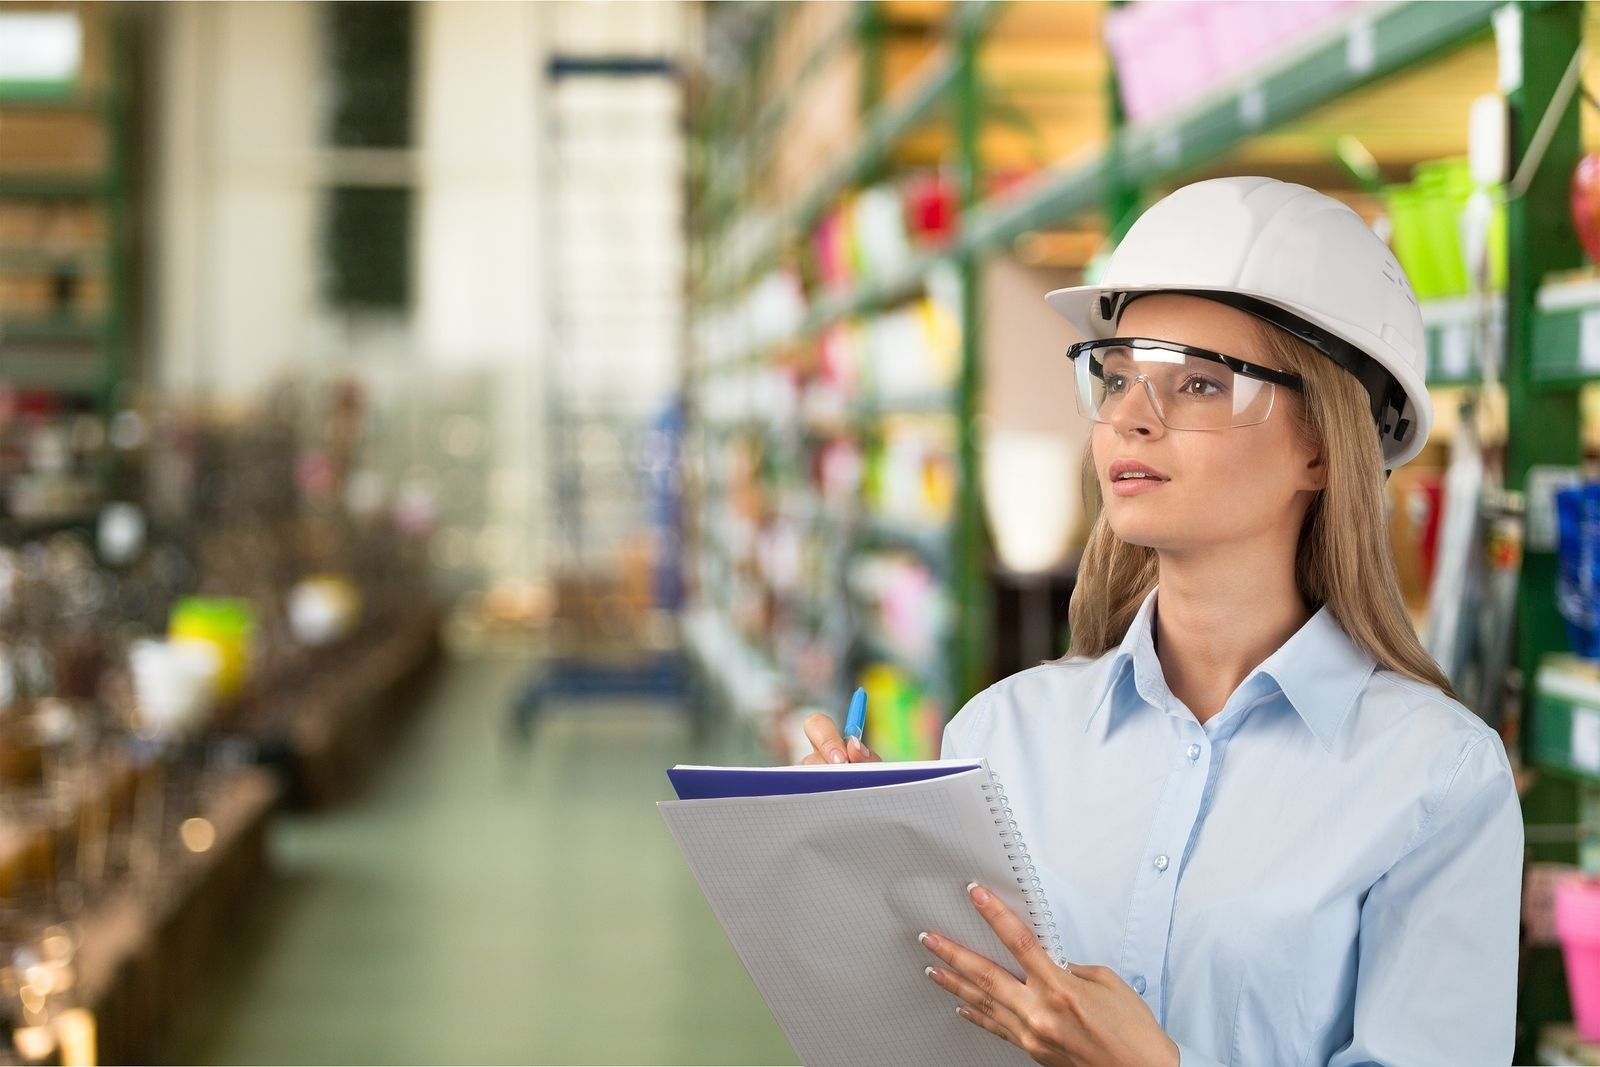 Will Structural Engineering Firms Get More Women Civil Engineers in the Future?